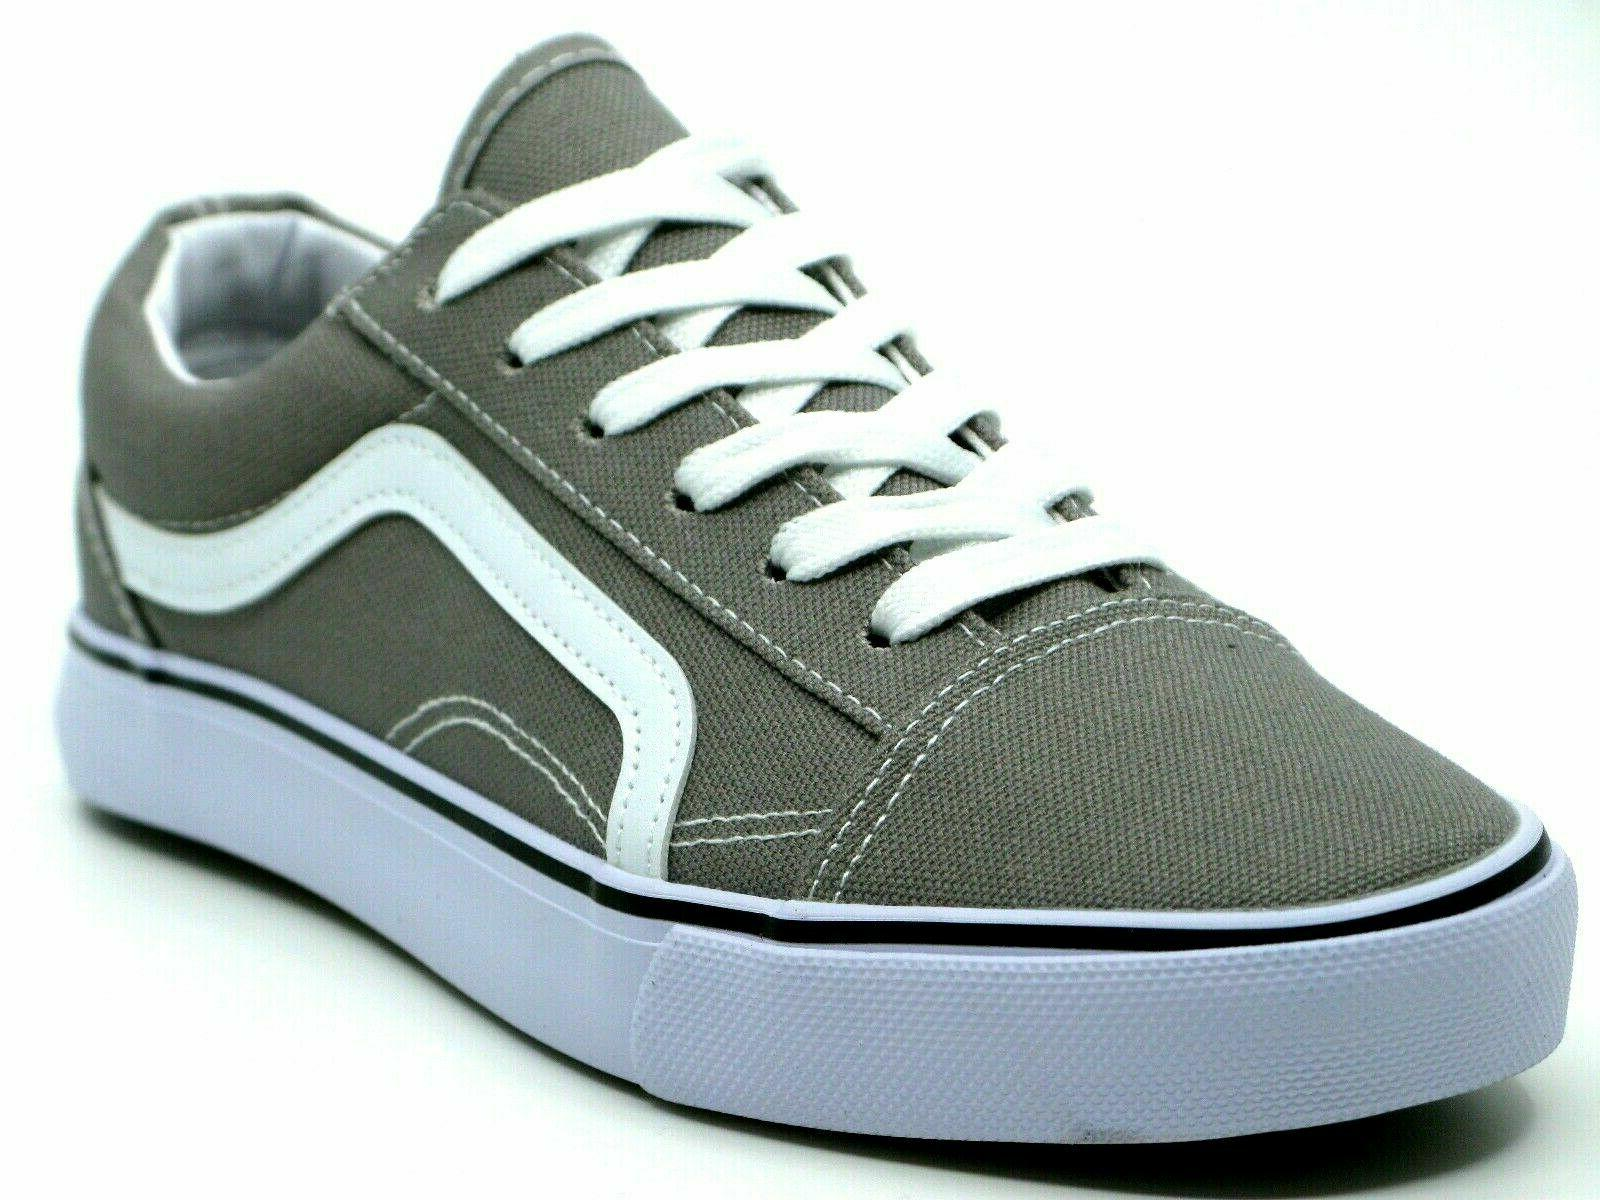 Men's Canvas Skate Sneakers Casual Fashion